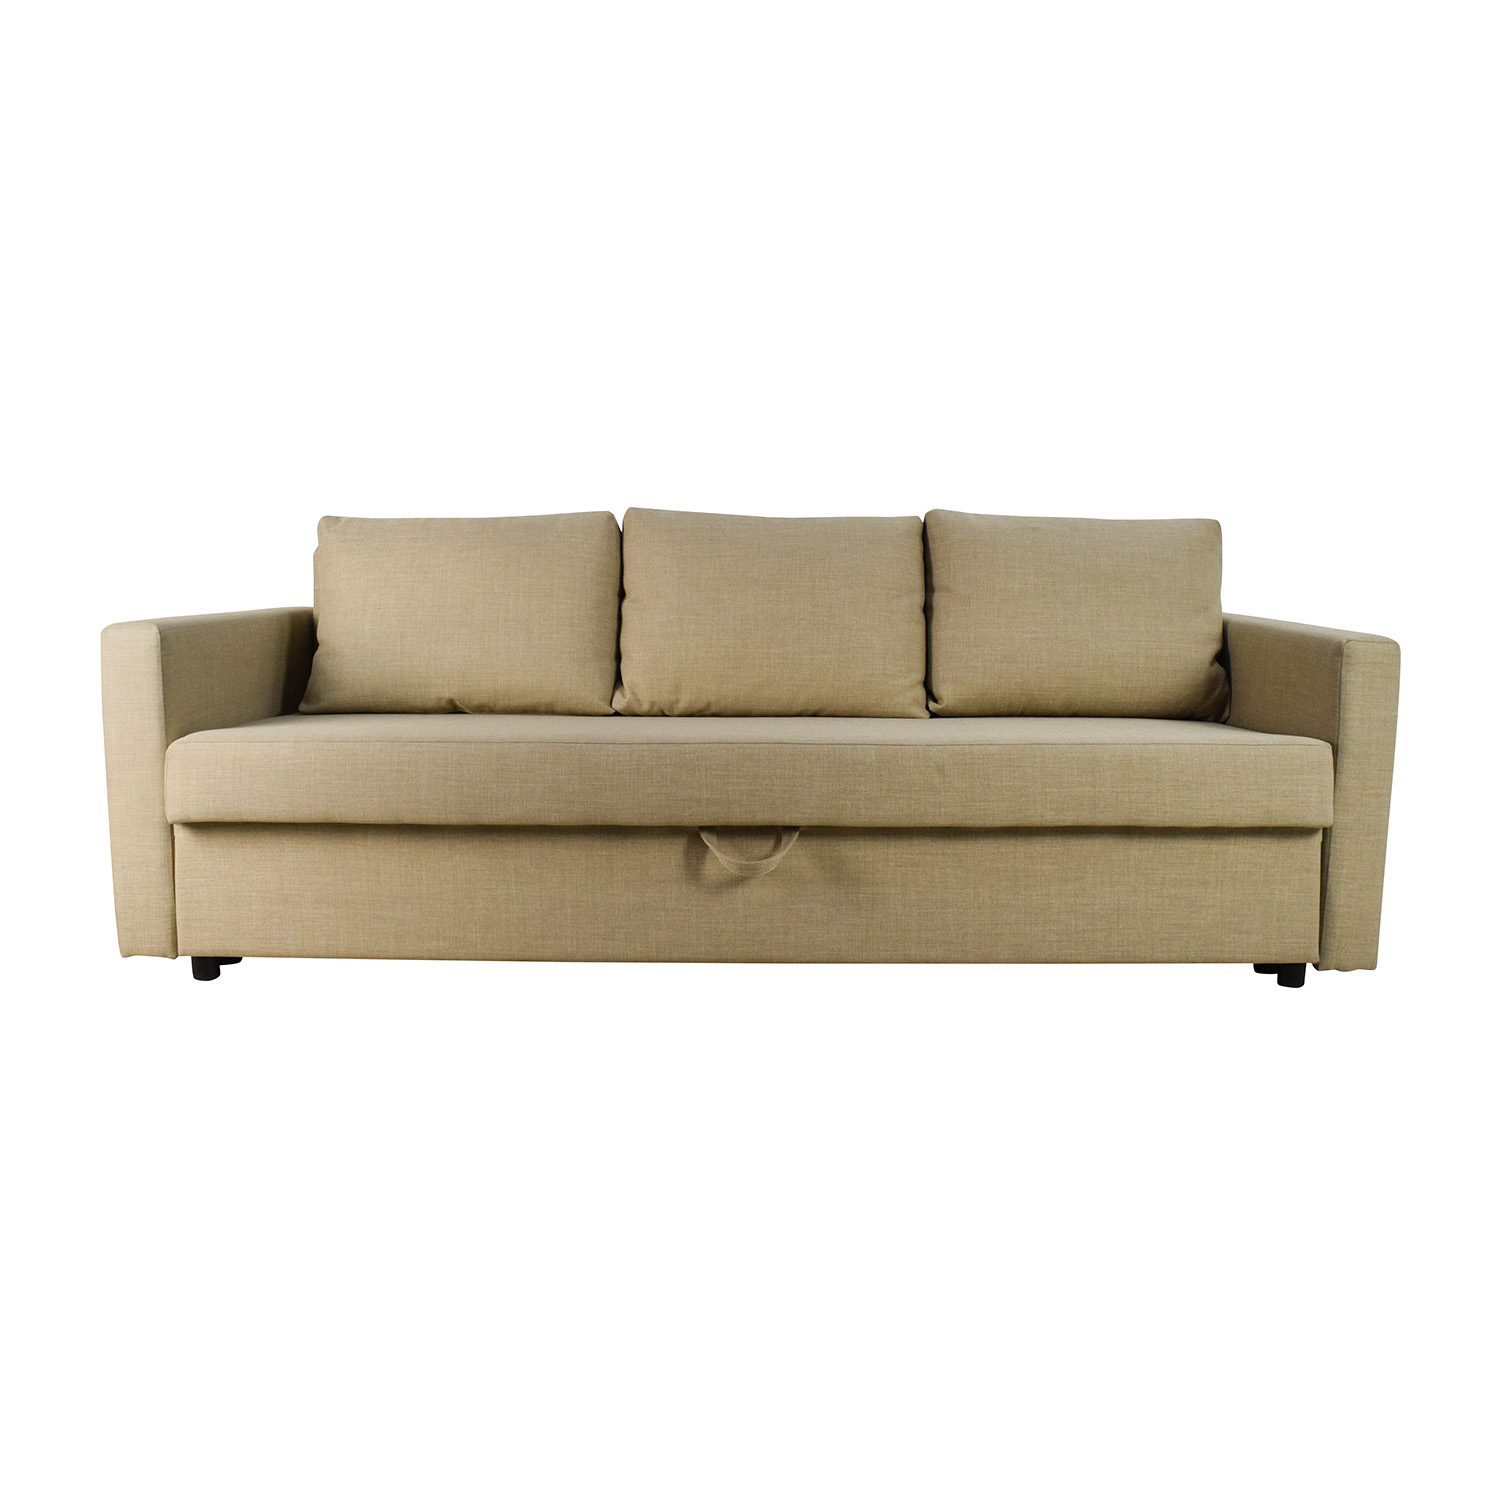 IKEA FRIHETEN Sleeper Sofa with Storage coupon